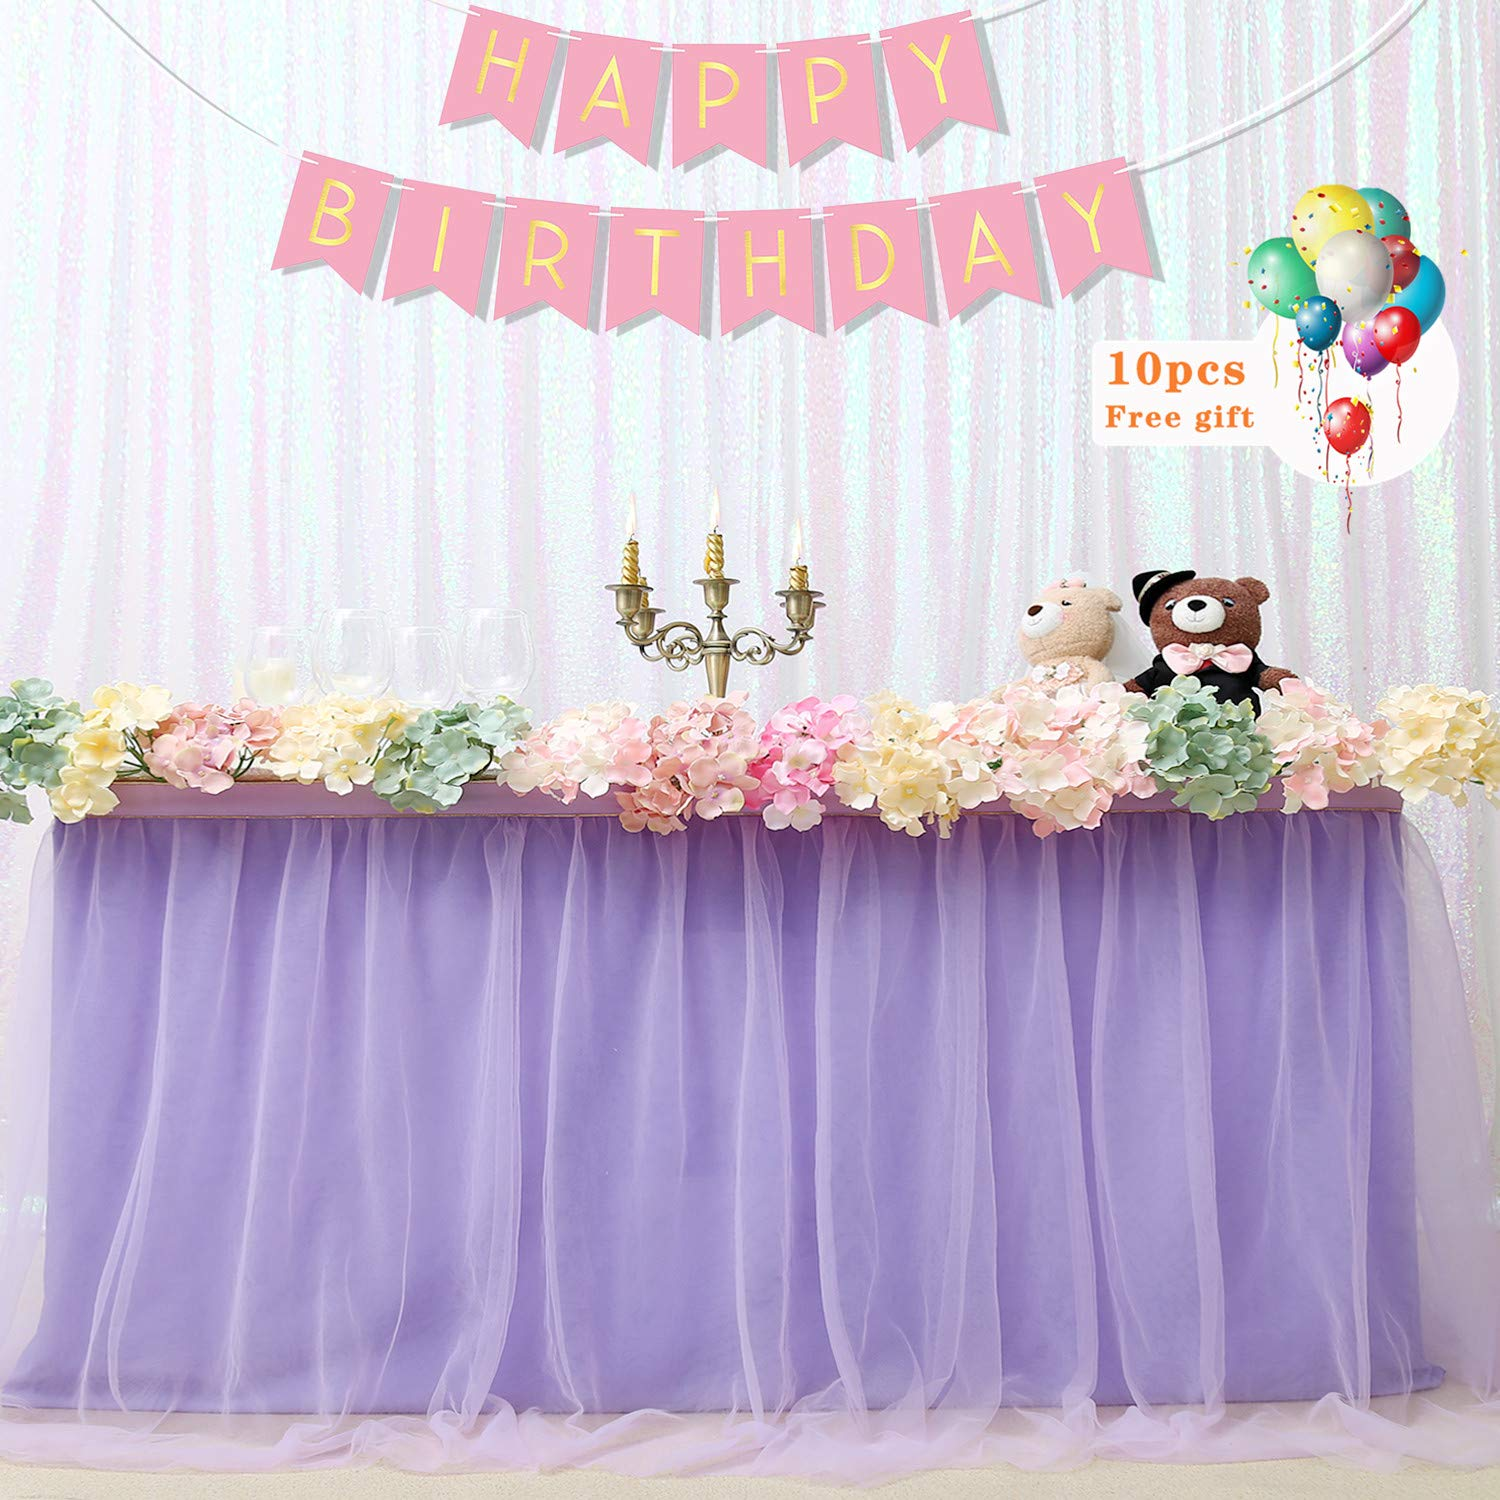 B-COOL Lovely Light purple Tulle Tutu Table Skirt 4.5 yards Tulle Table Cloth Skirt Customized Romantic Girl Princess Birthday Party Table Skirts Banquet Table Decorations(L14(ft) H 30in)